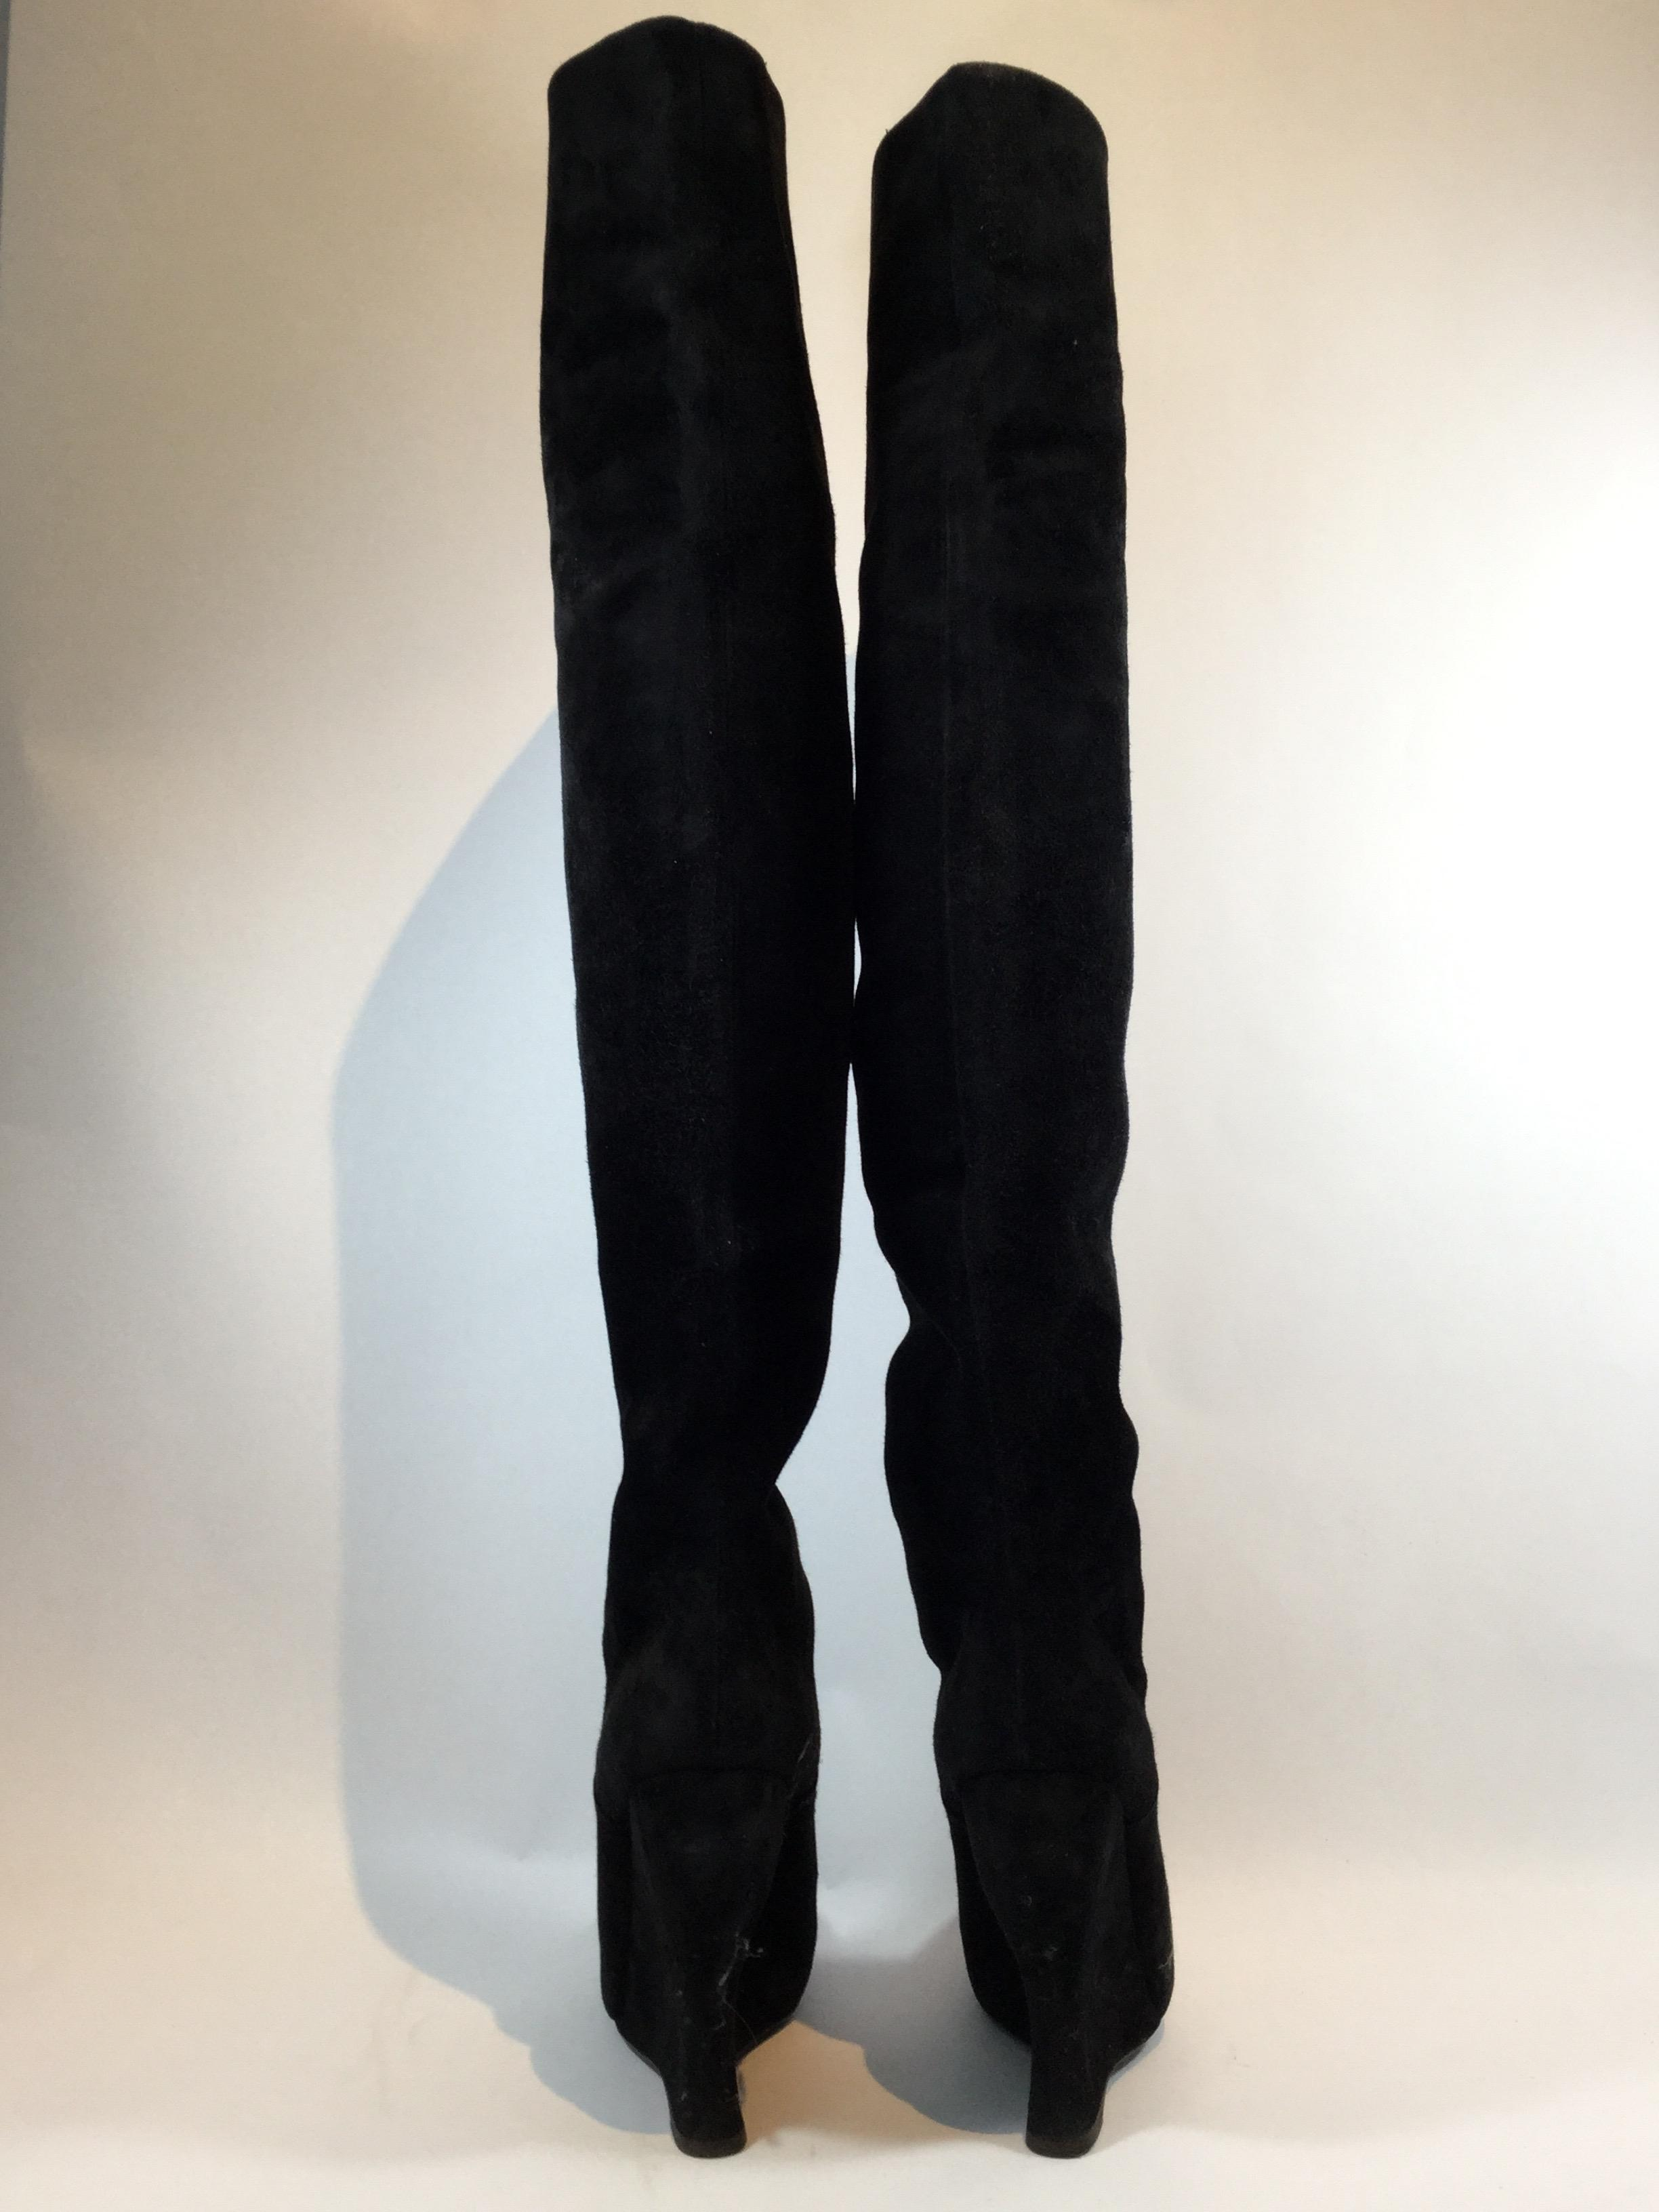 Bottega Veneta Suede Thigh High Black Boots on Sale, 71% Off ...